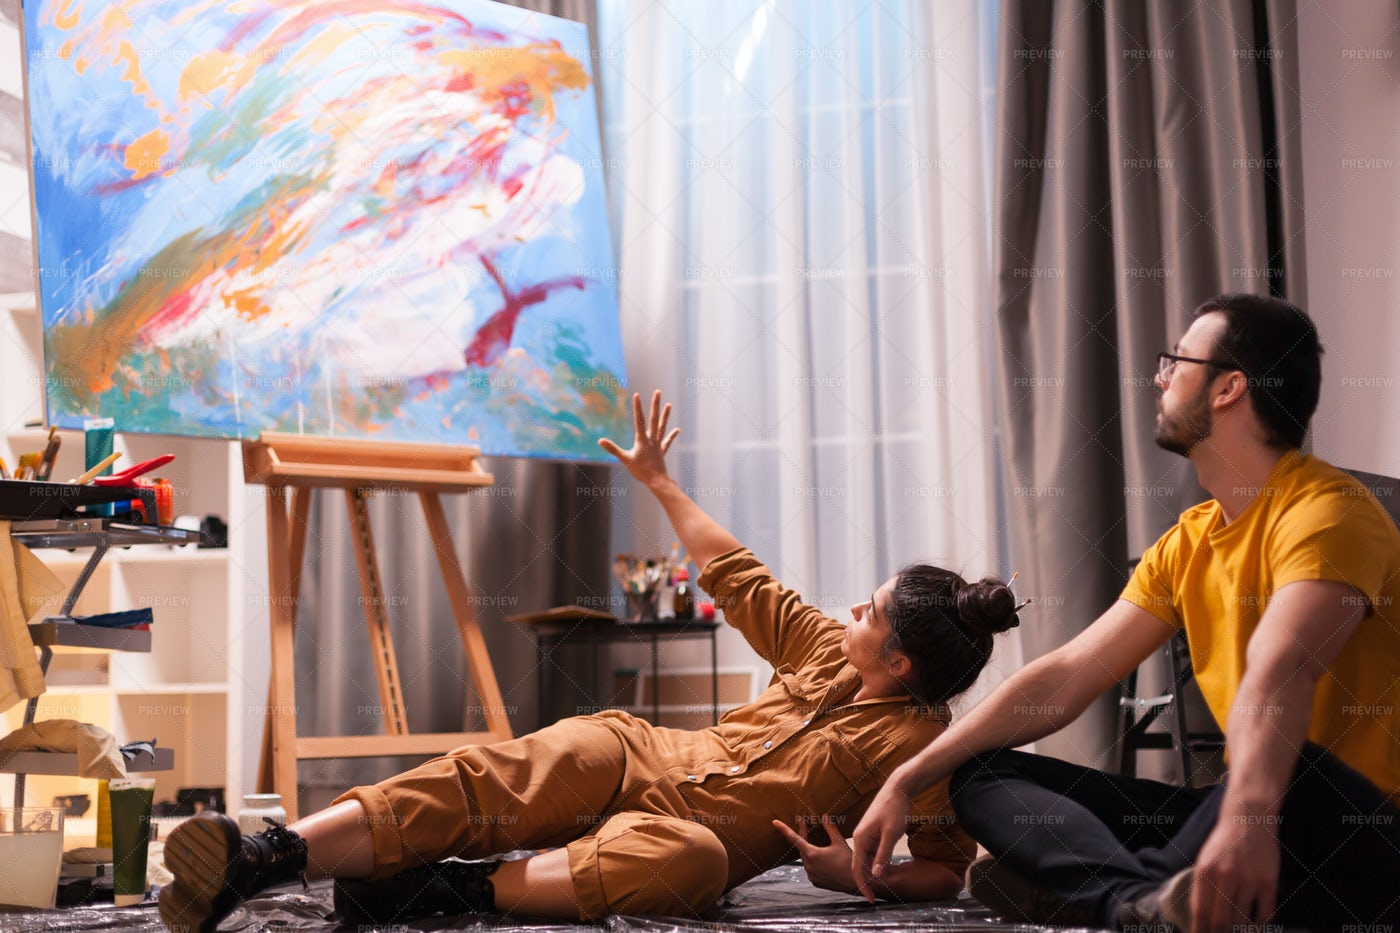 Discussing Her Painting: Stock Photos